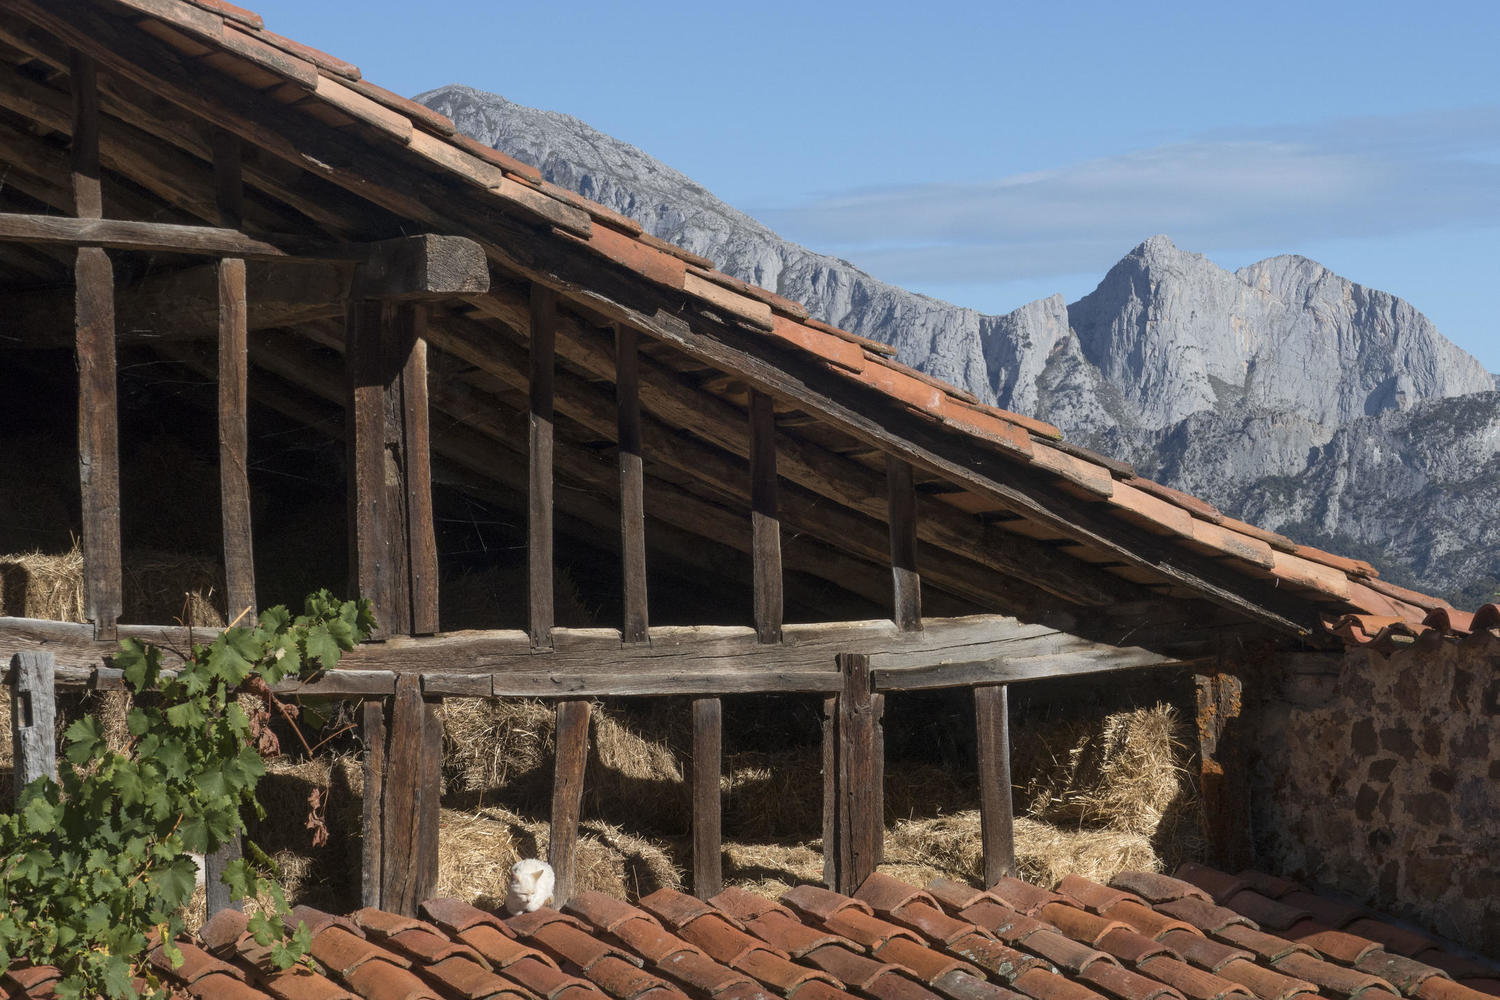 Lazy cat in Liebana with the Agero peak in the background